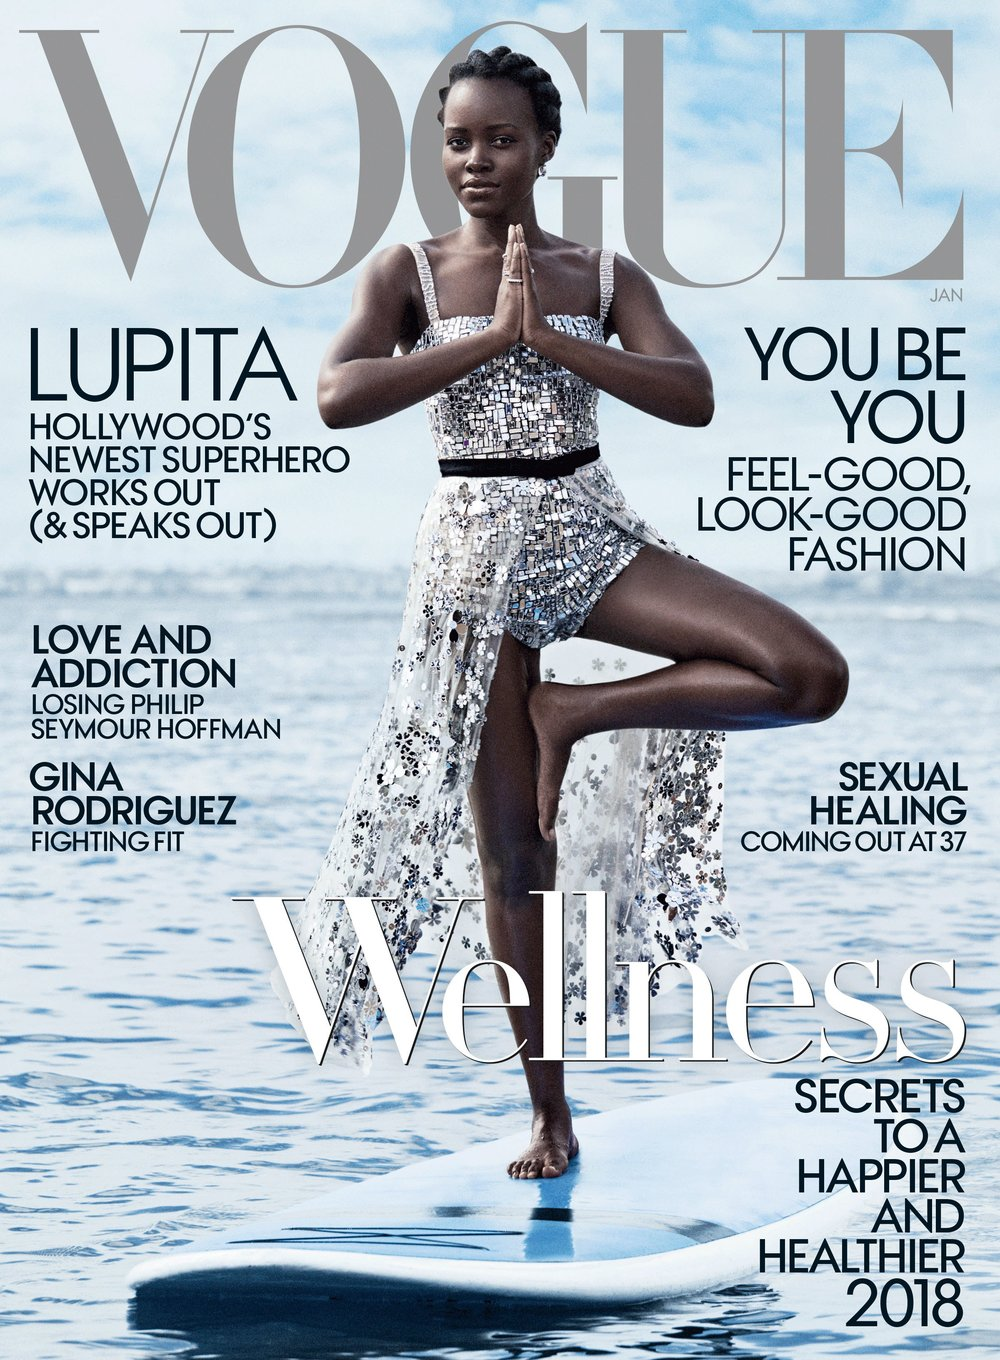 04-lupita-nyong-o-vogue-january-2018.jpg